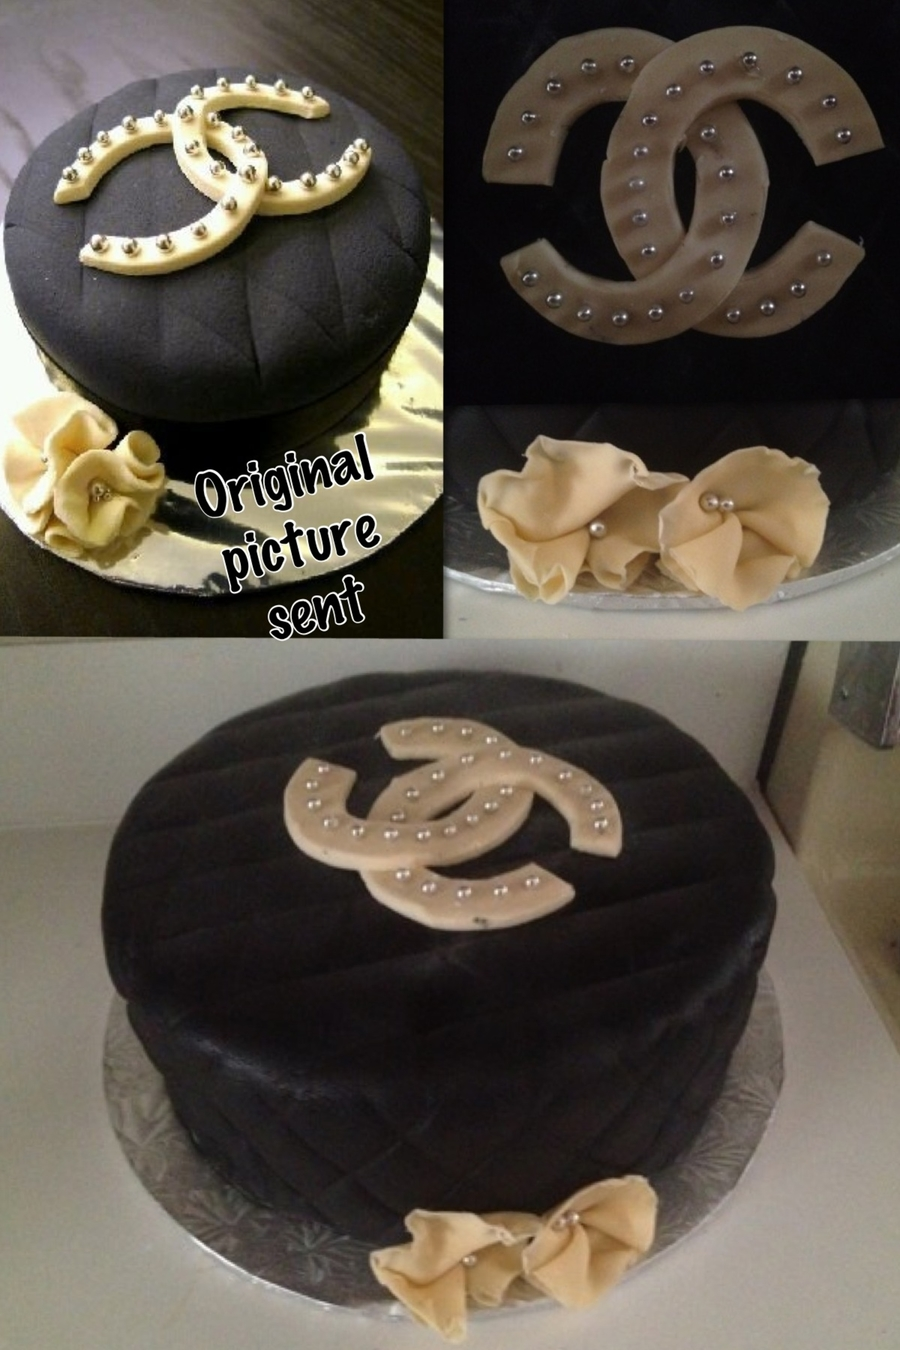 Chanel on Cake Central